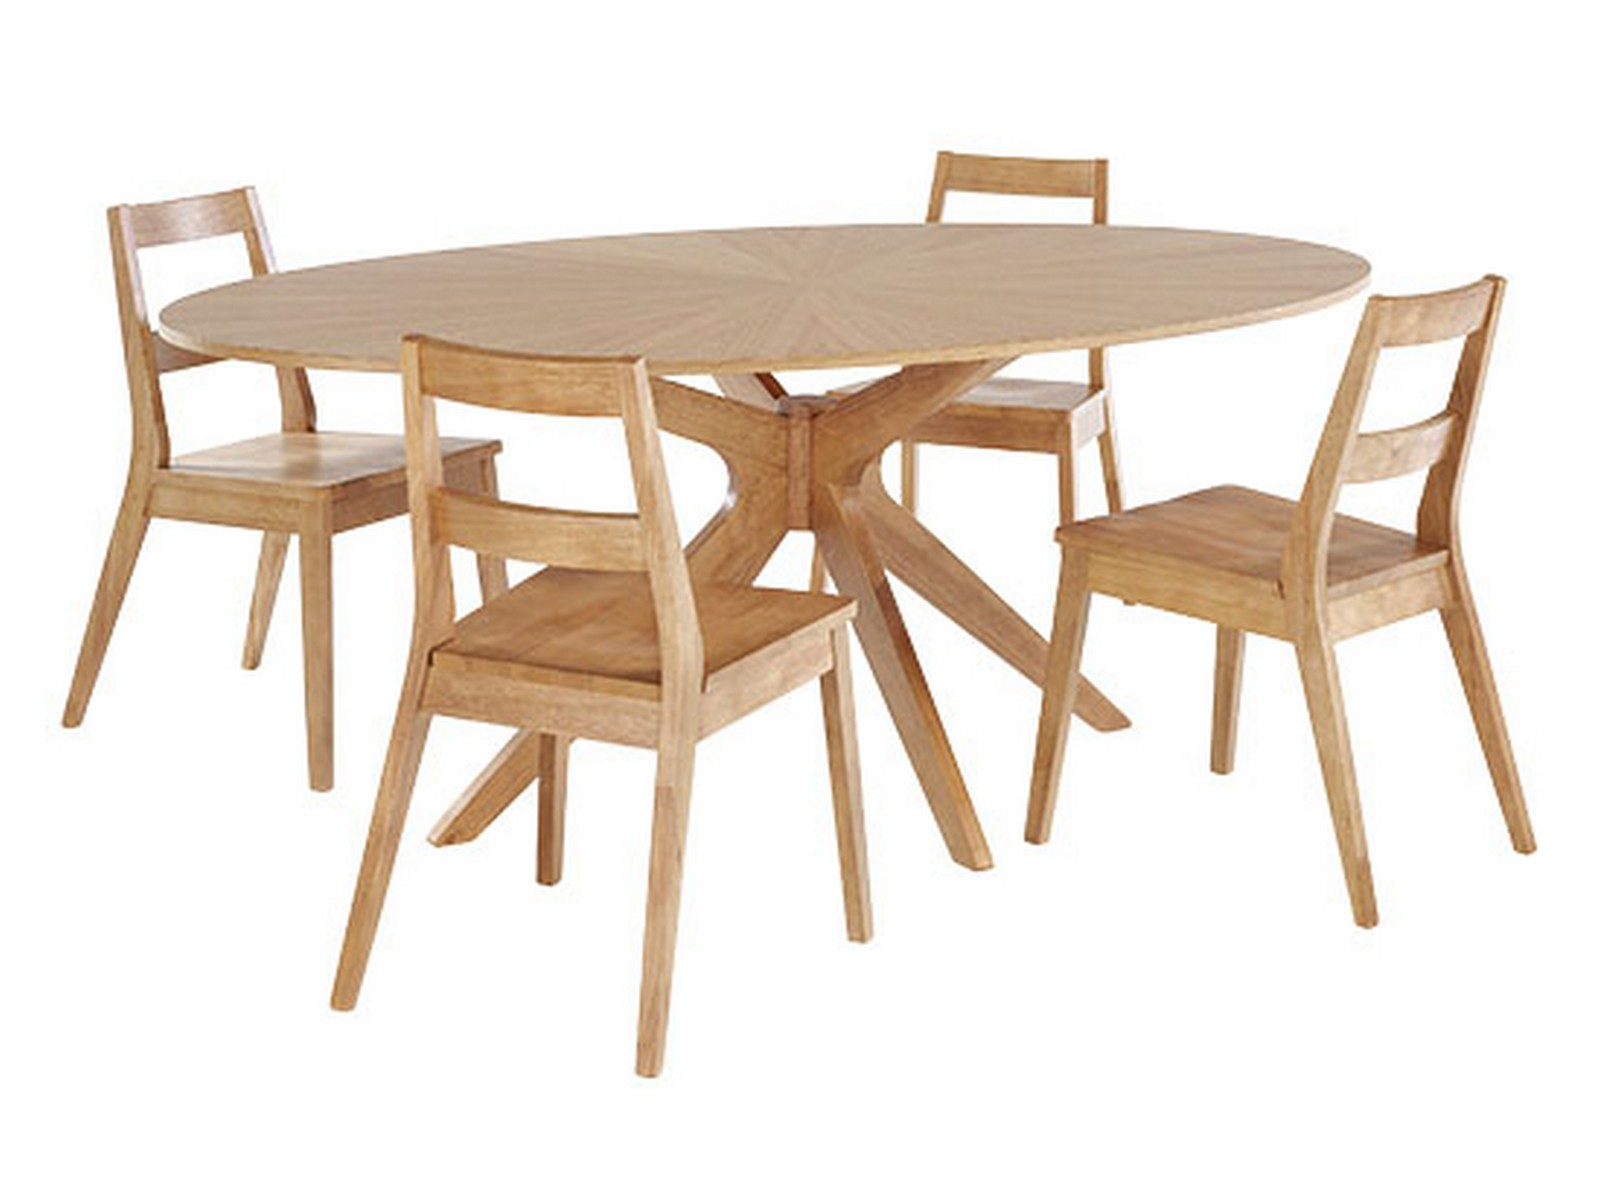 Phenomenal Details About Malmo Dining Set Dining Table 4 Chairs White Oak Starburst Scandinavian Cjindustries Chair Design For Home Cjindustriesco